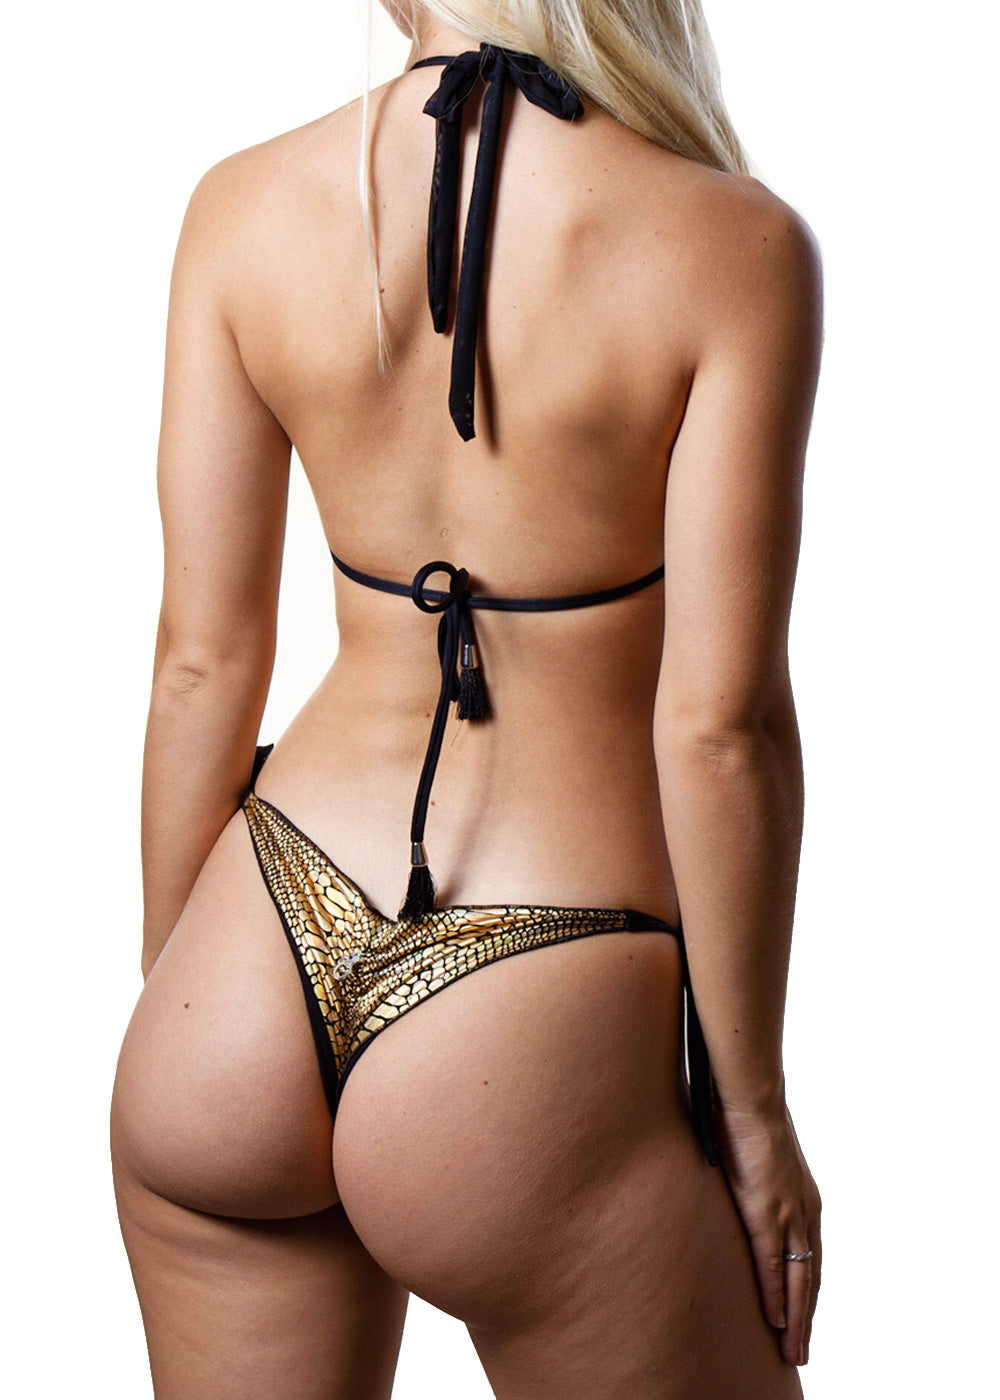 Georgia gold snakeprint back mesh triangle side-tie bikini bottom